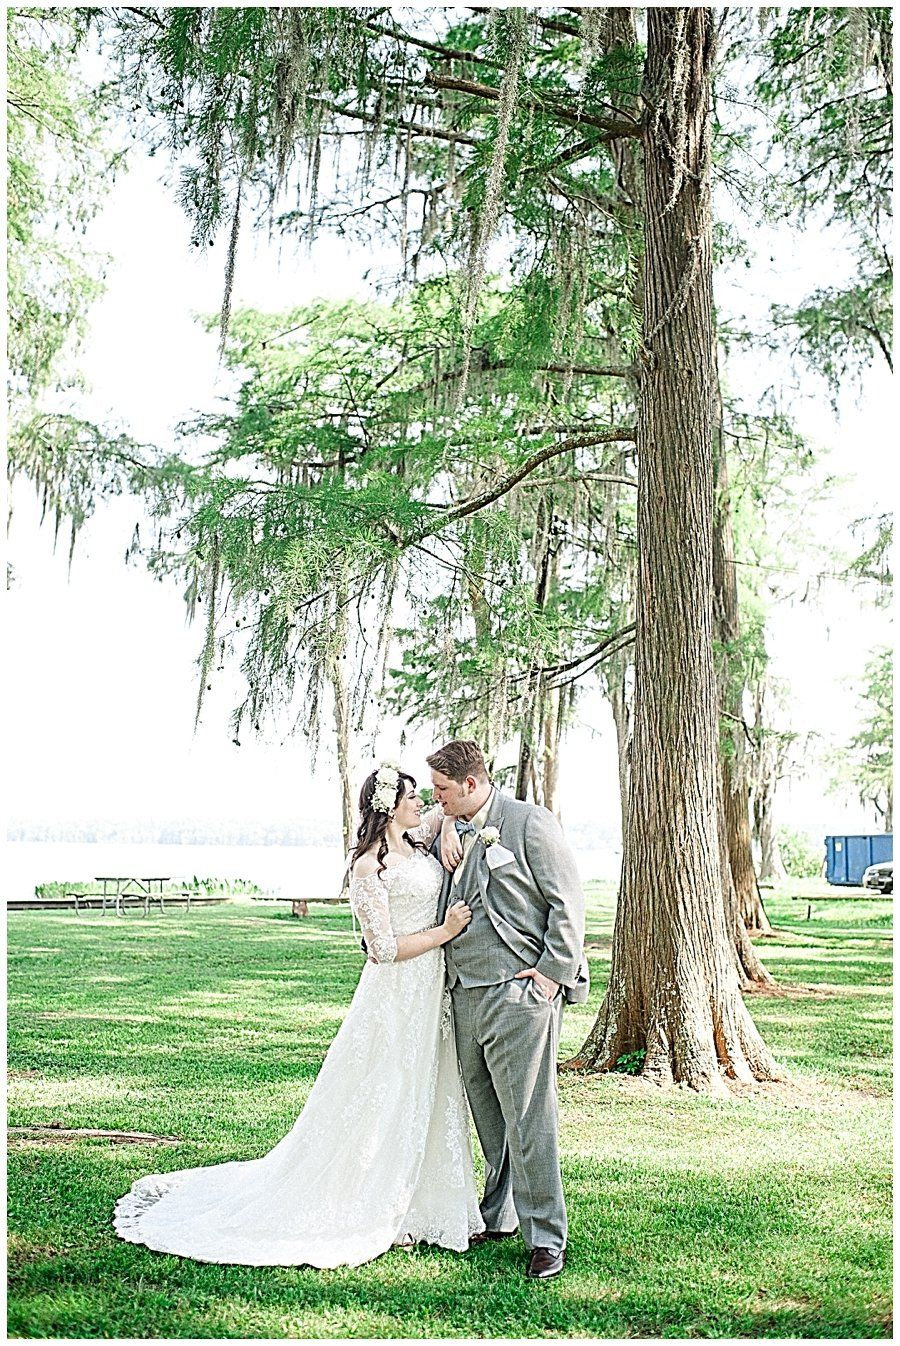 Pin by sarah english on my wedding captured by danielle valimont